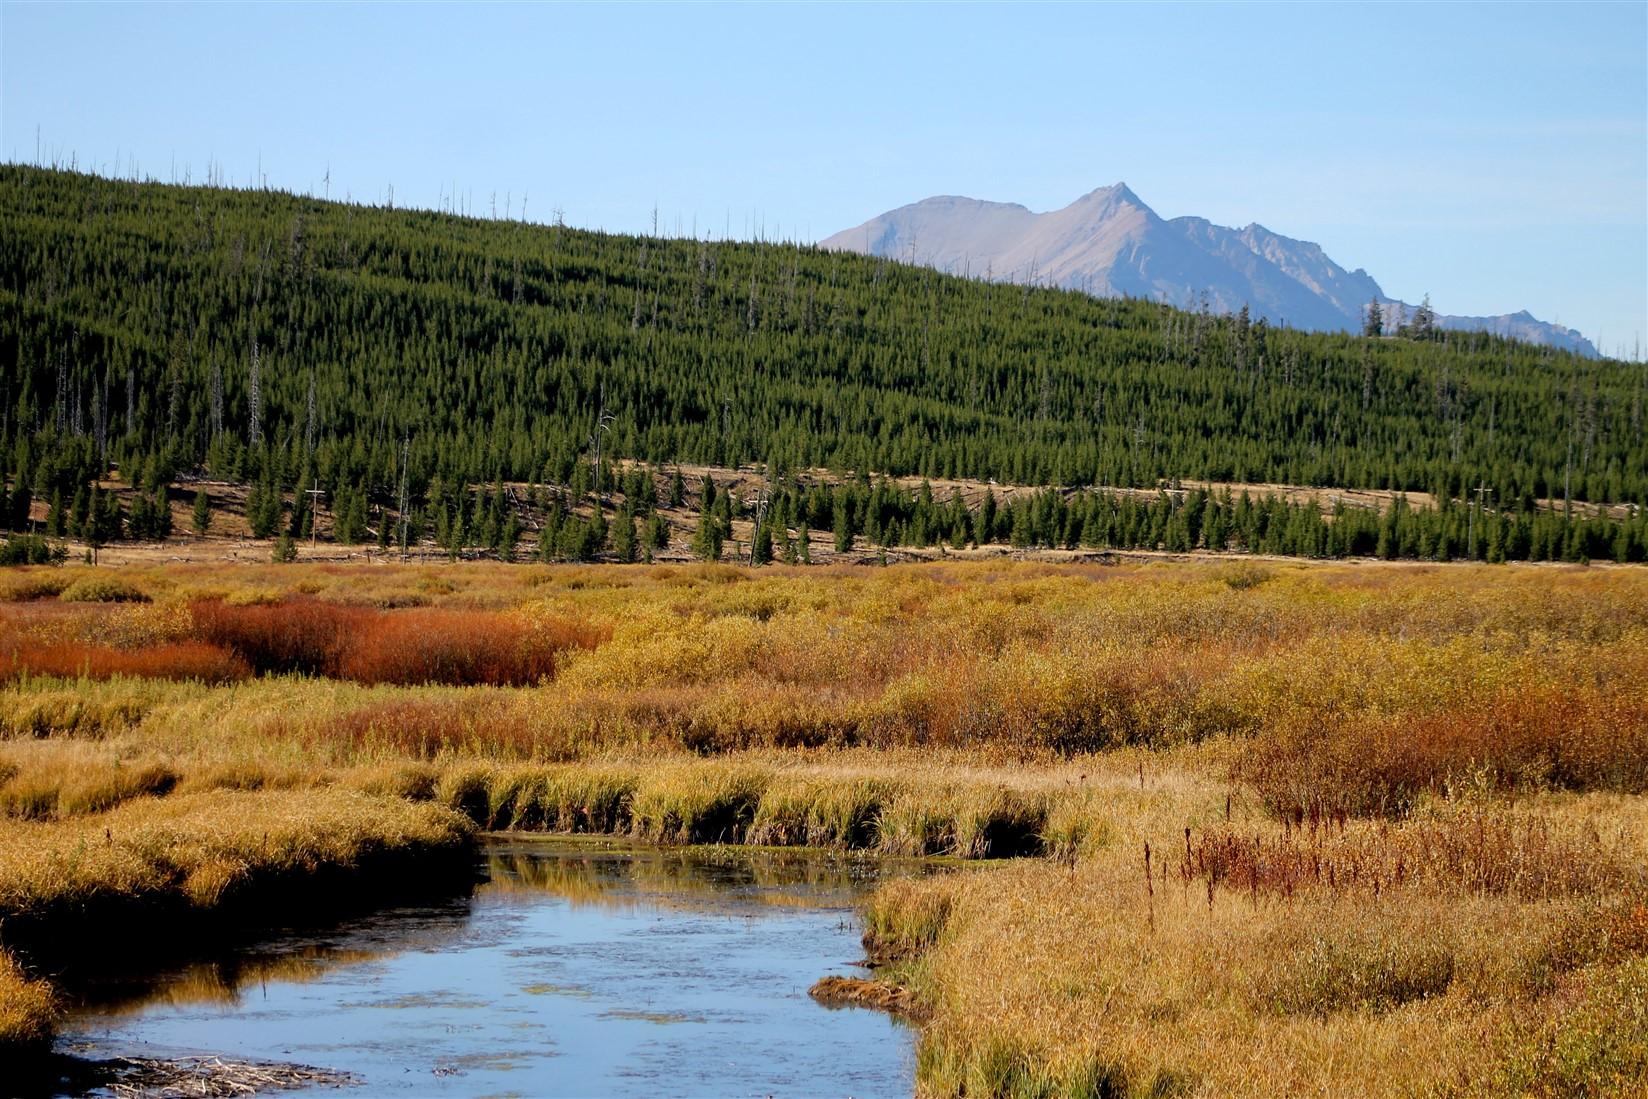 2015 09 11 151 Yellowstone National Park WY